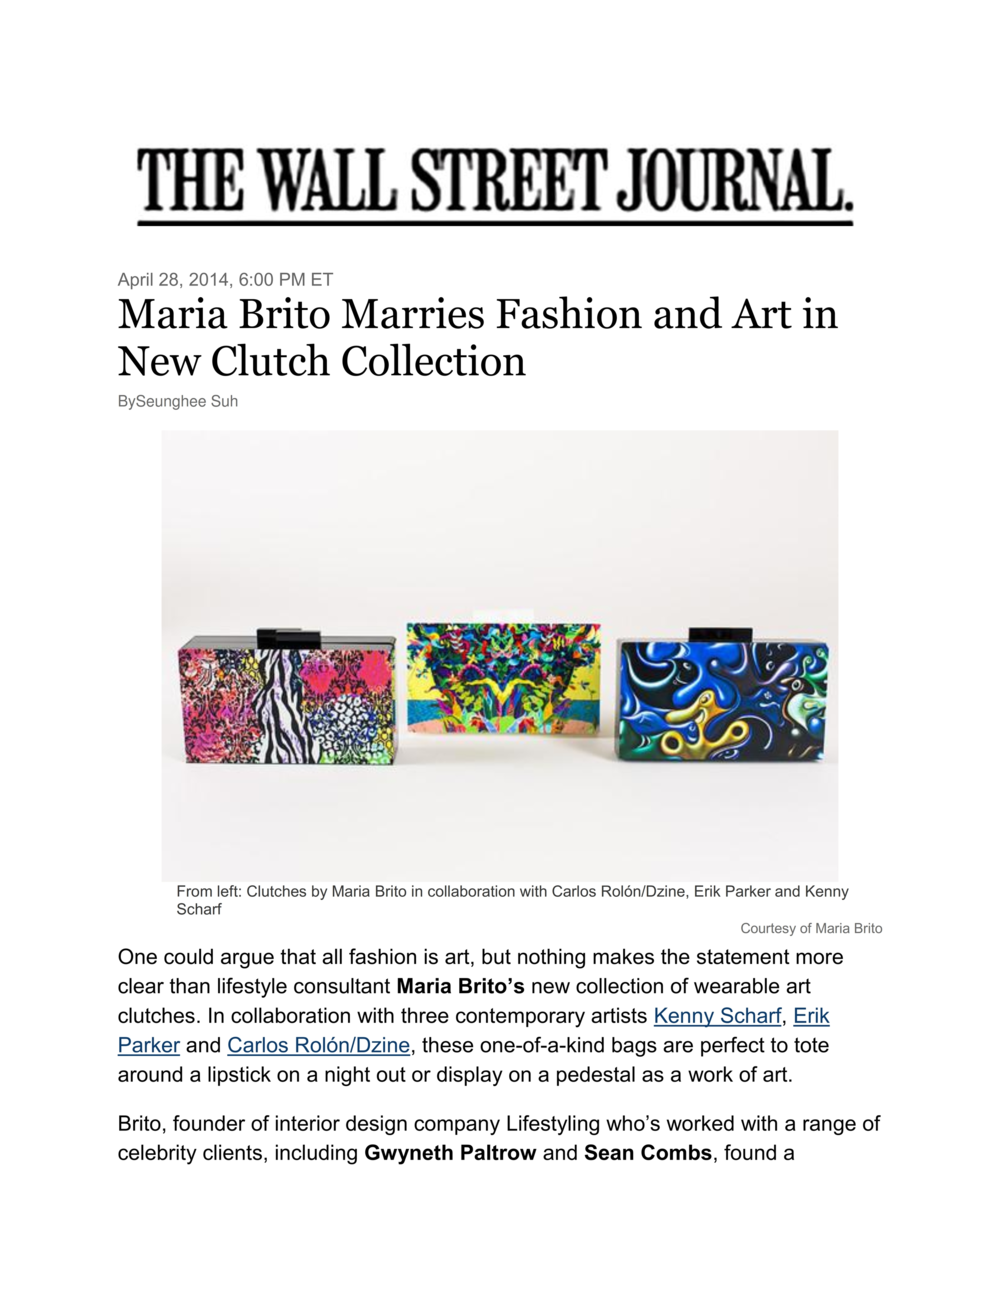 The first capsule got featured in more than 12 press pieces including the Wall Street Journal